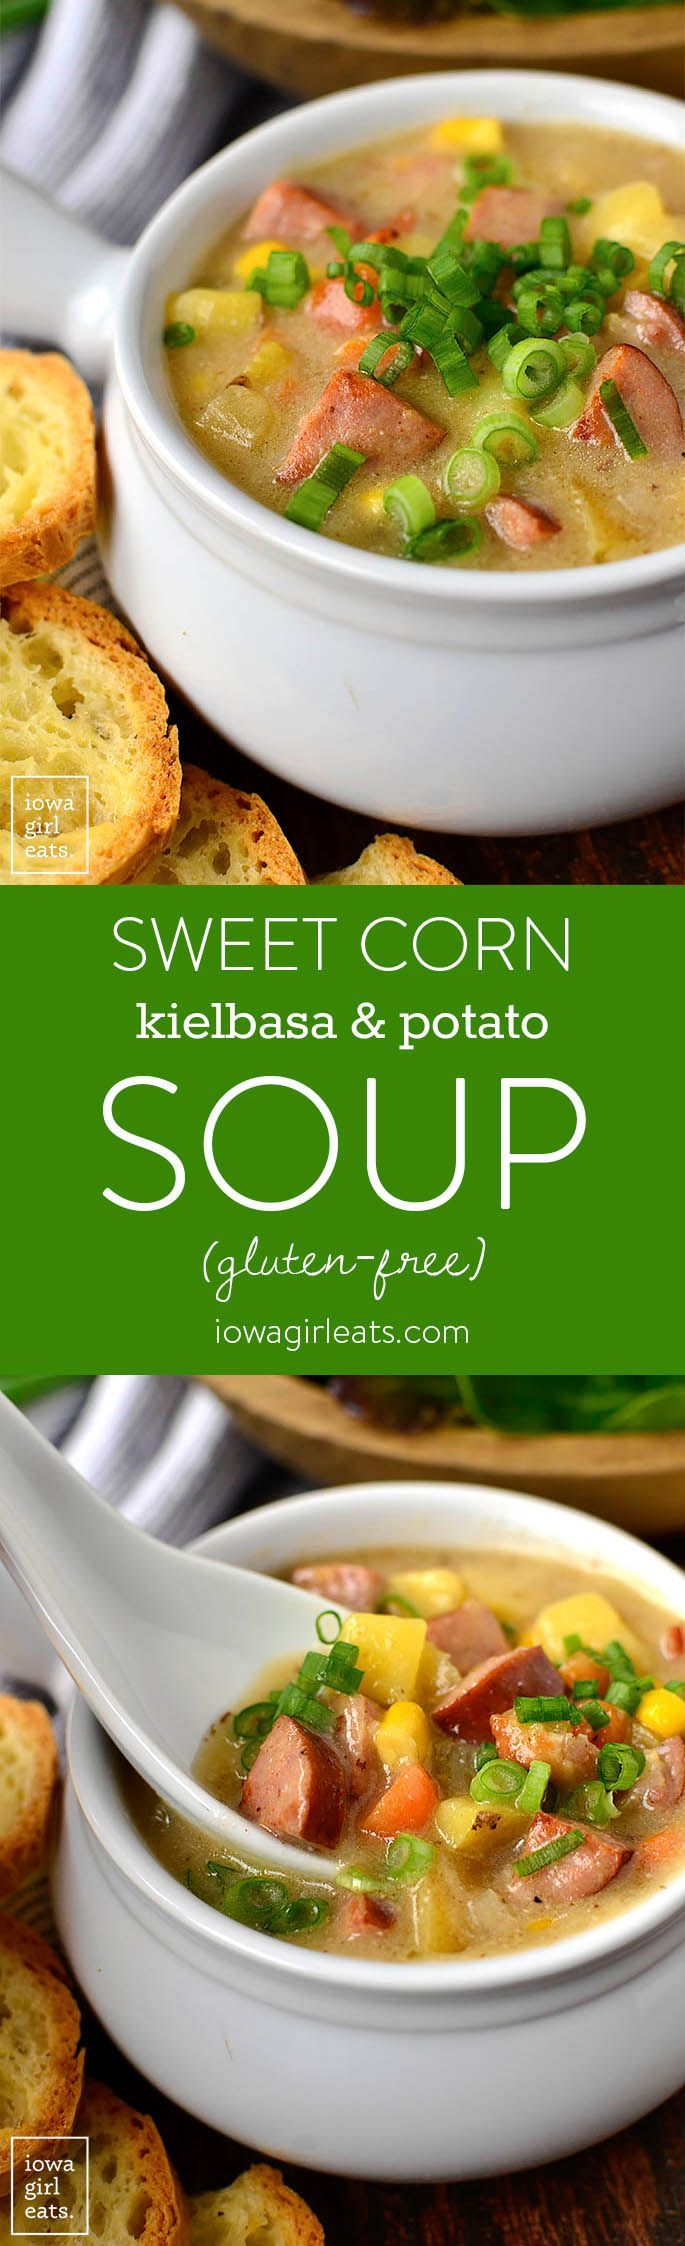 Sweet Corn, Kielbasa and Potato Soup is for the coldest of nights! This hearty and comforting, gluten-free soup recipe is filled with savory kielbasa, creamy potatoes, and snappy sweet corn. | iowagirleats.com #glutenfree